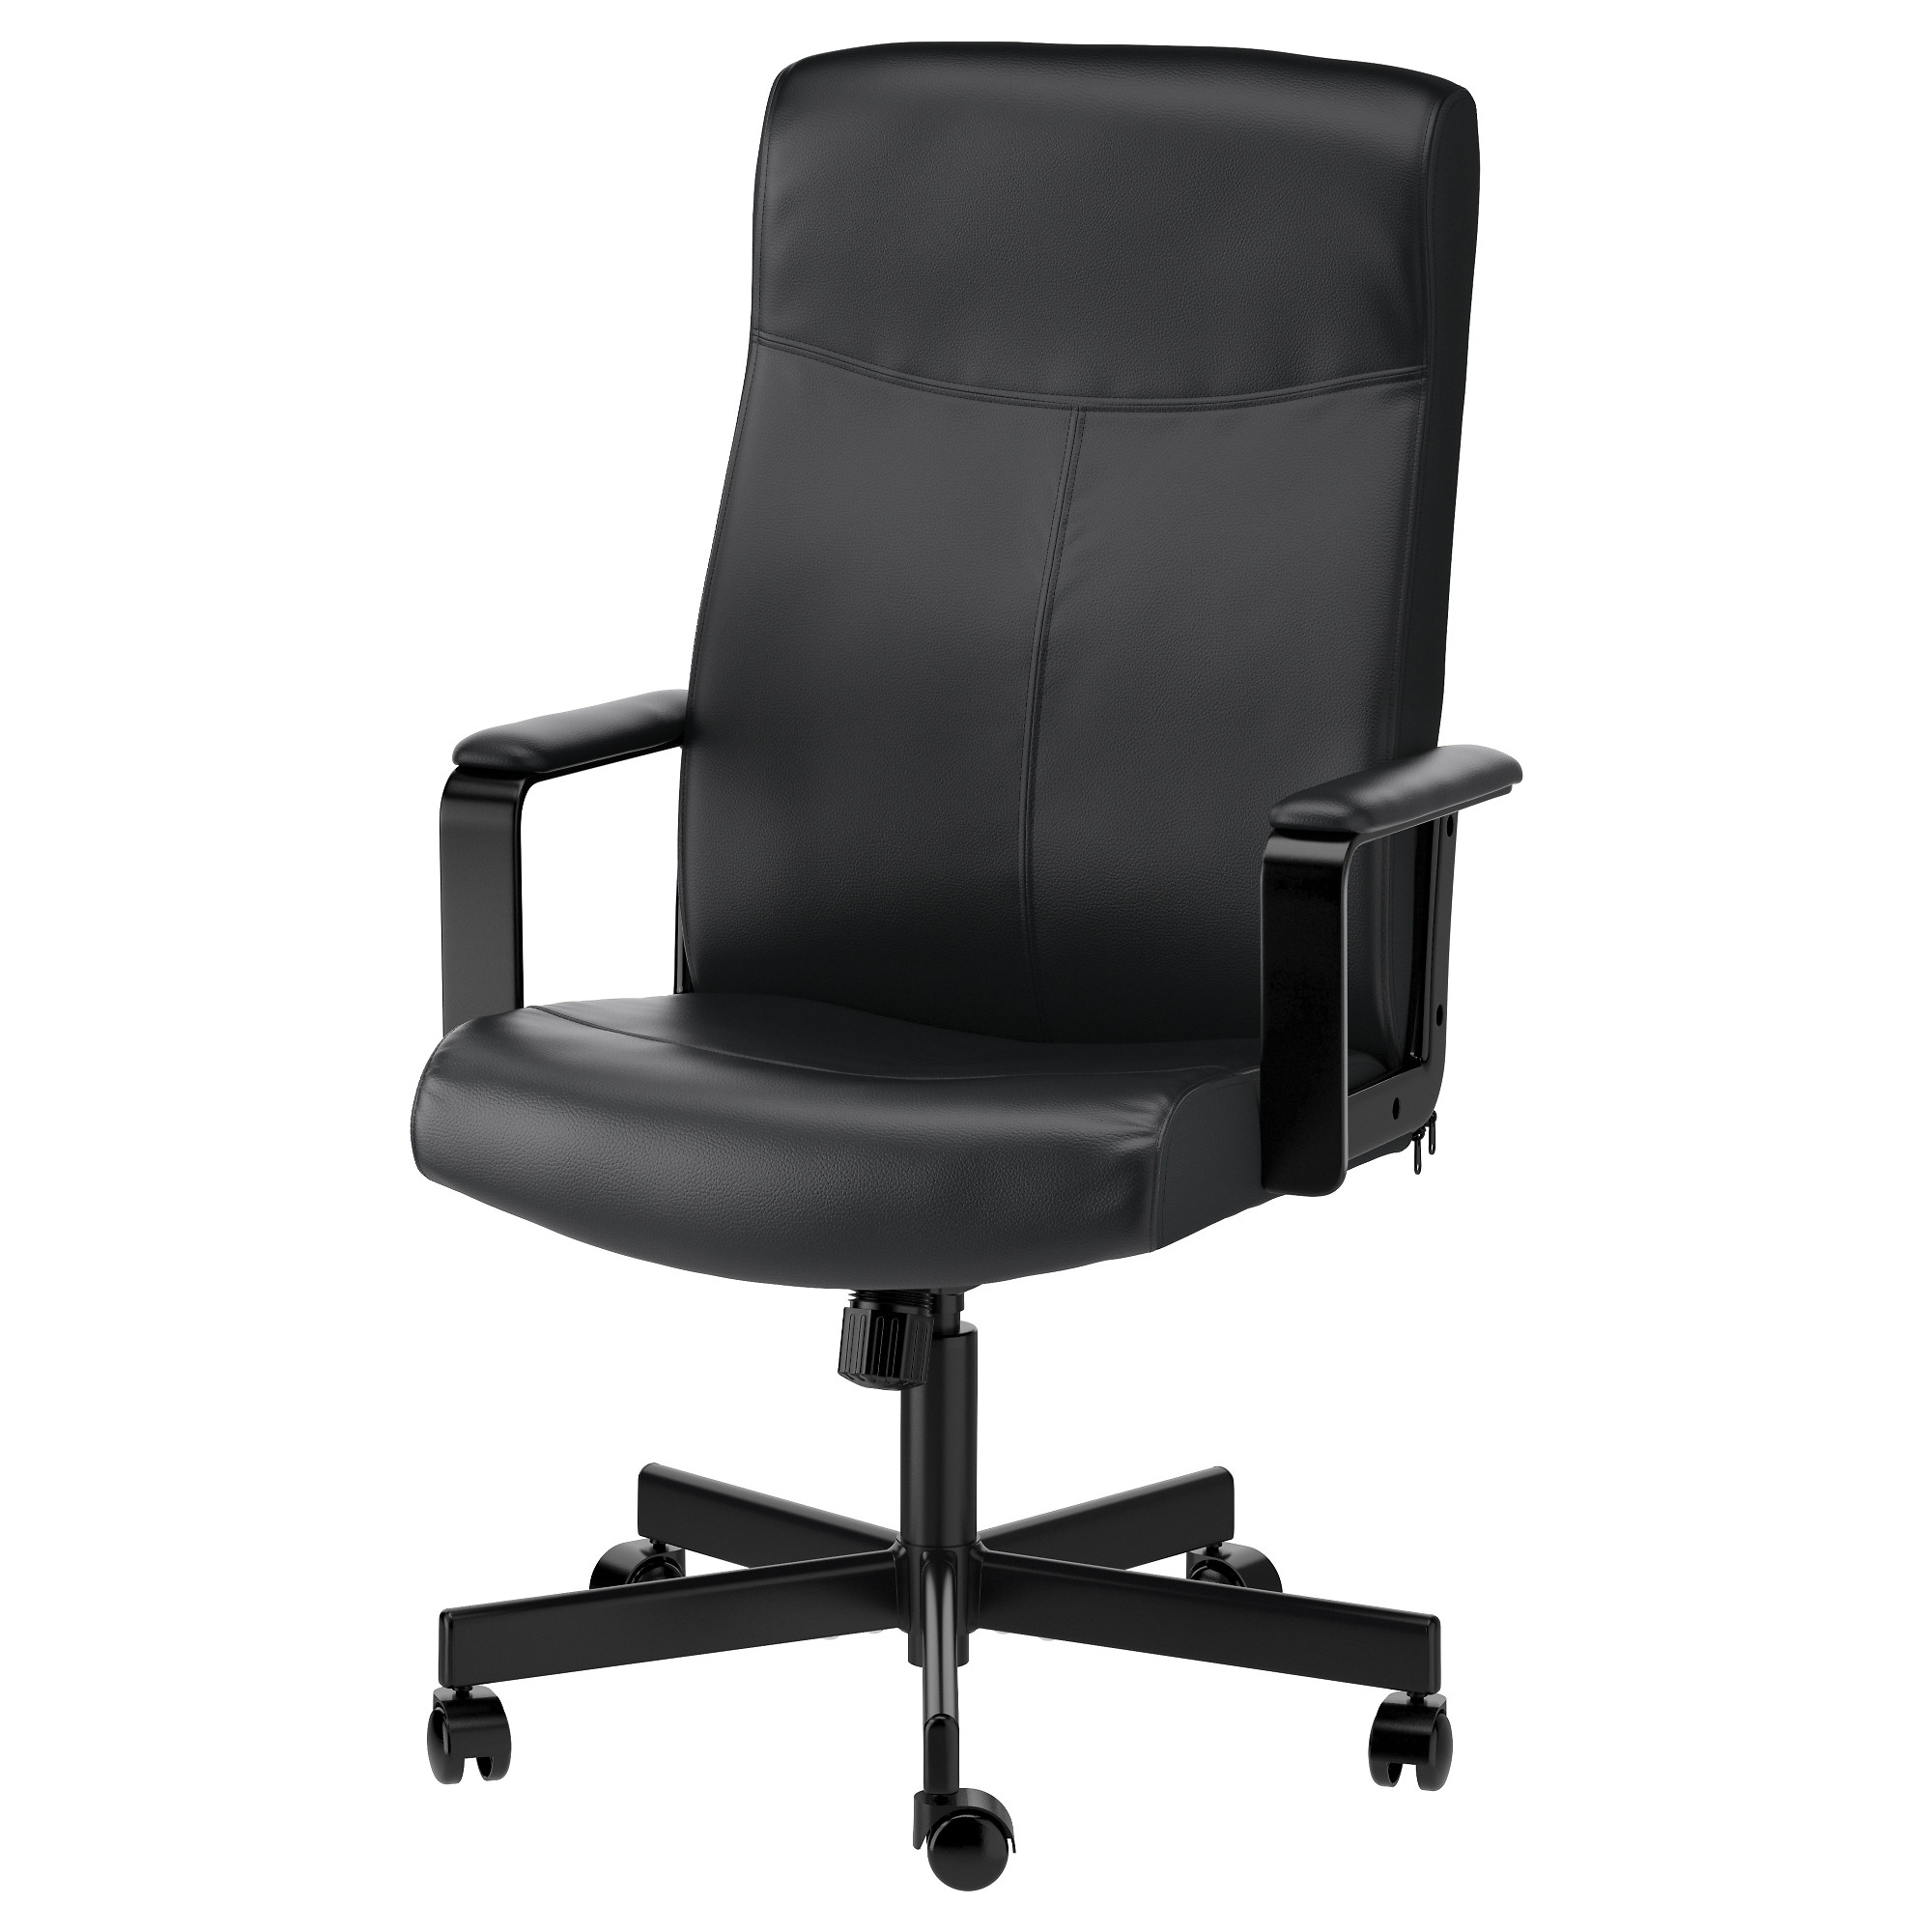 Stunning desk chairs millberget swivel chair, bomstad black tested for: 242 lb 8 oz depth: 25 dmkwlqg